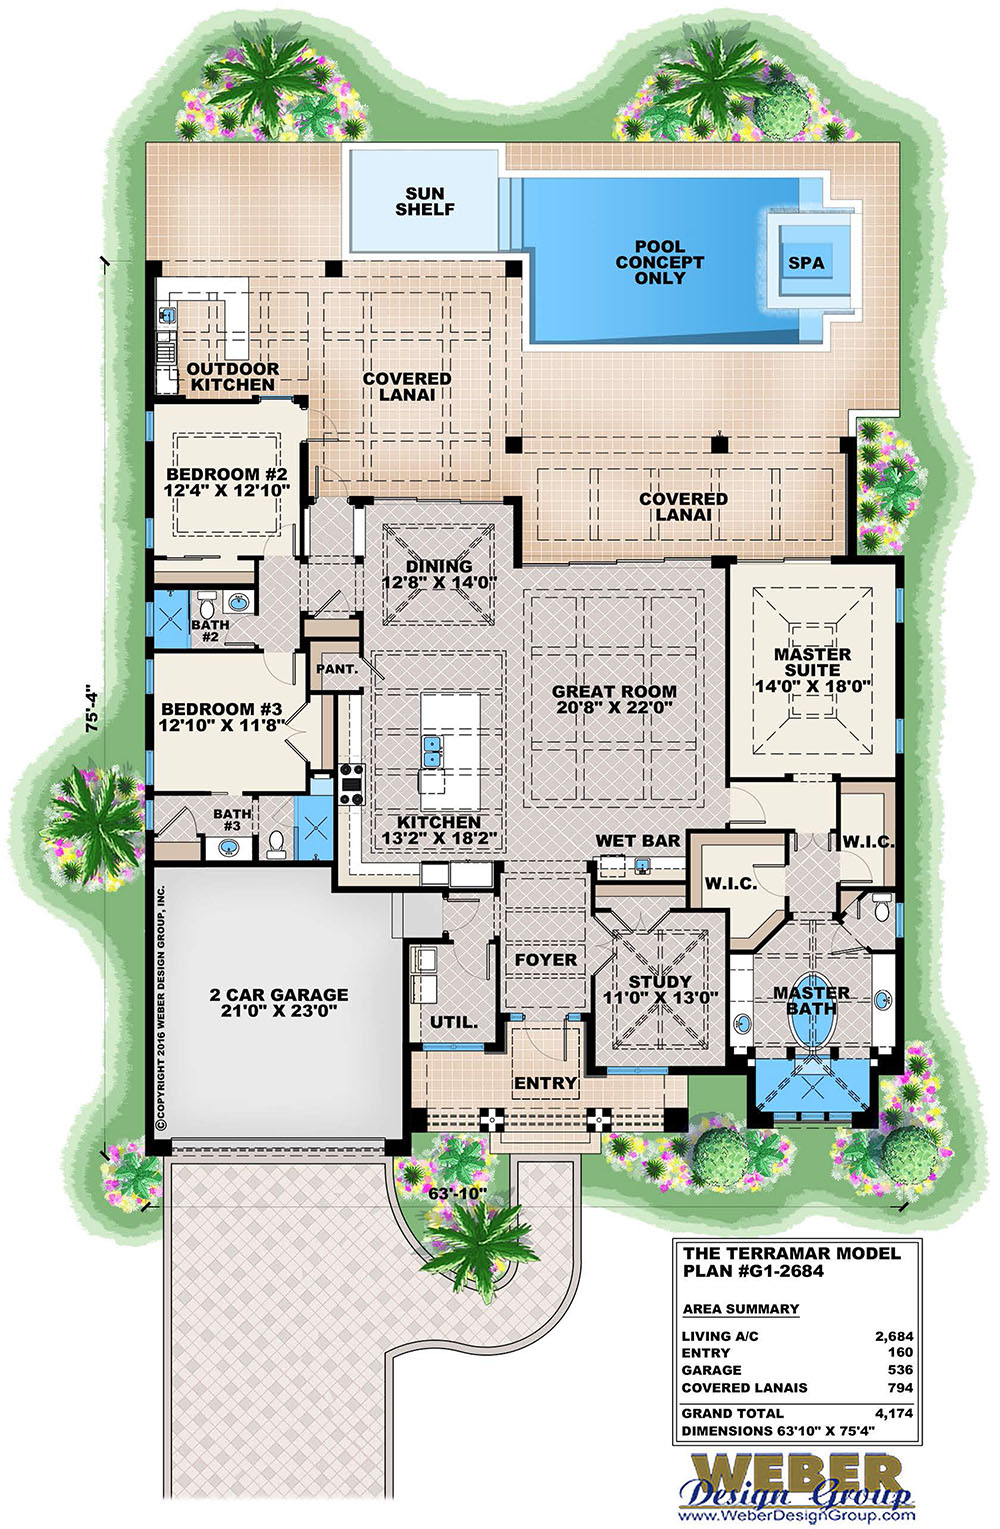 Beach House Plan: Contemporary Caribbean Beach Home Floor Plan